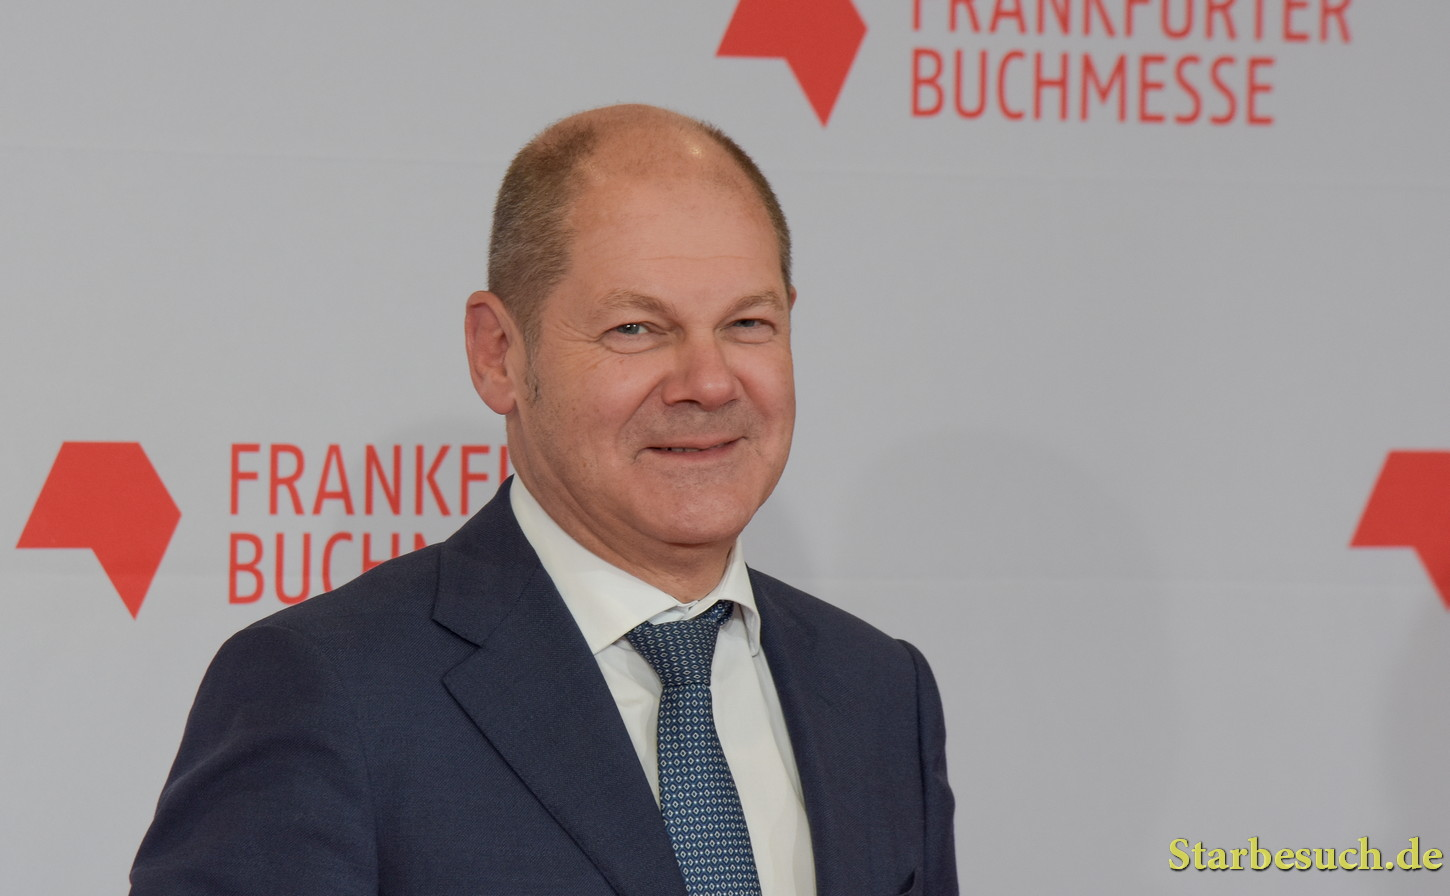 Olaf Scholz arriving on the red carpet for the Frankfurt Bookfair / Buchmesse Frankfurt 2017